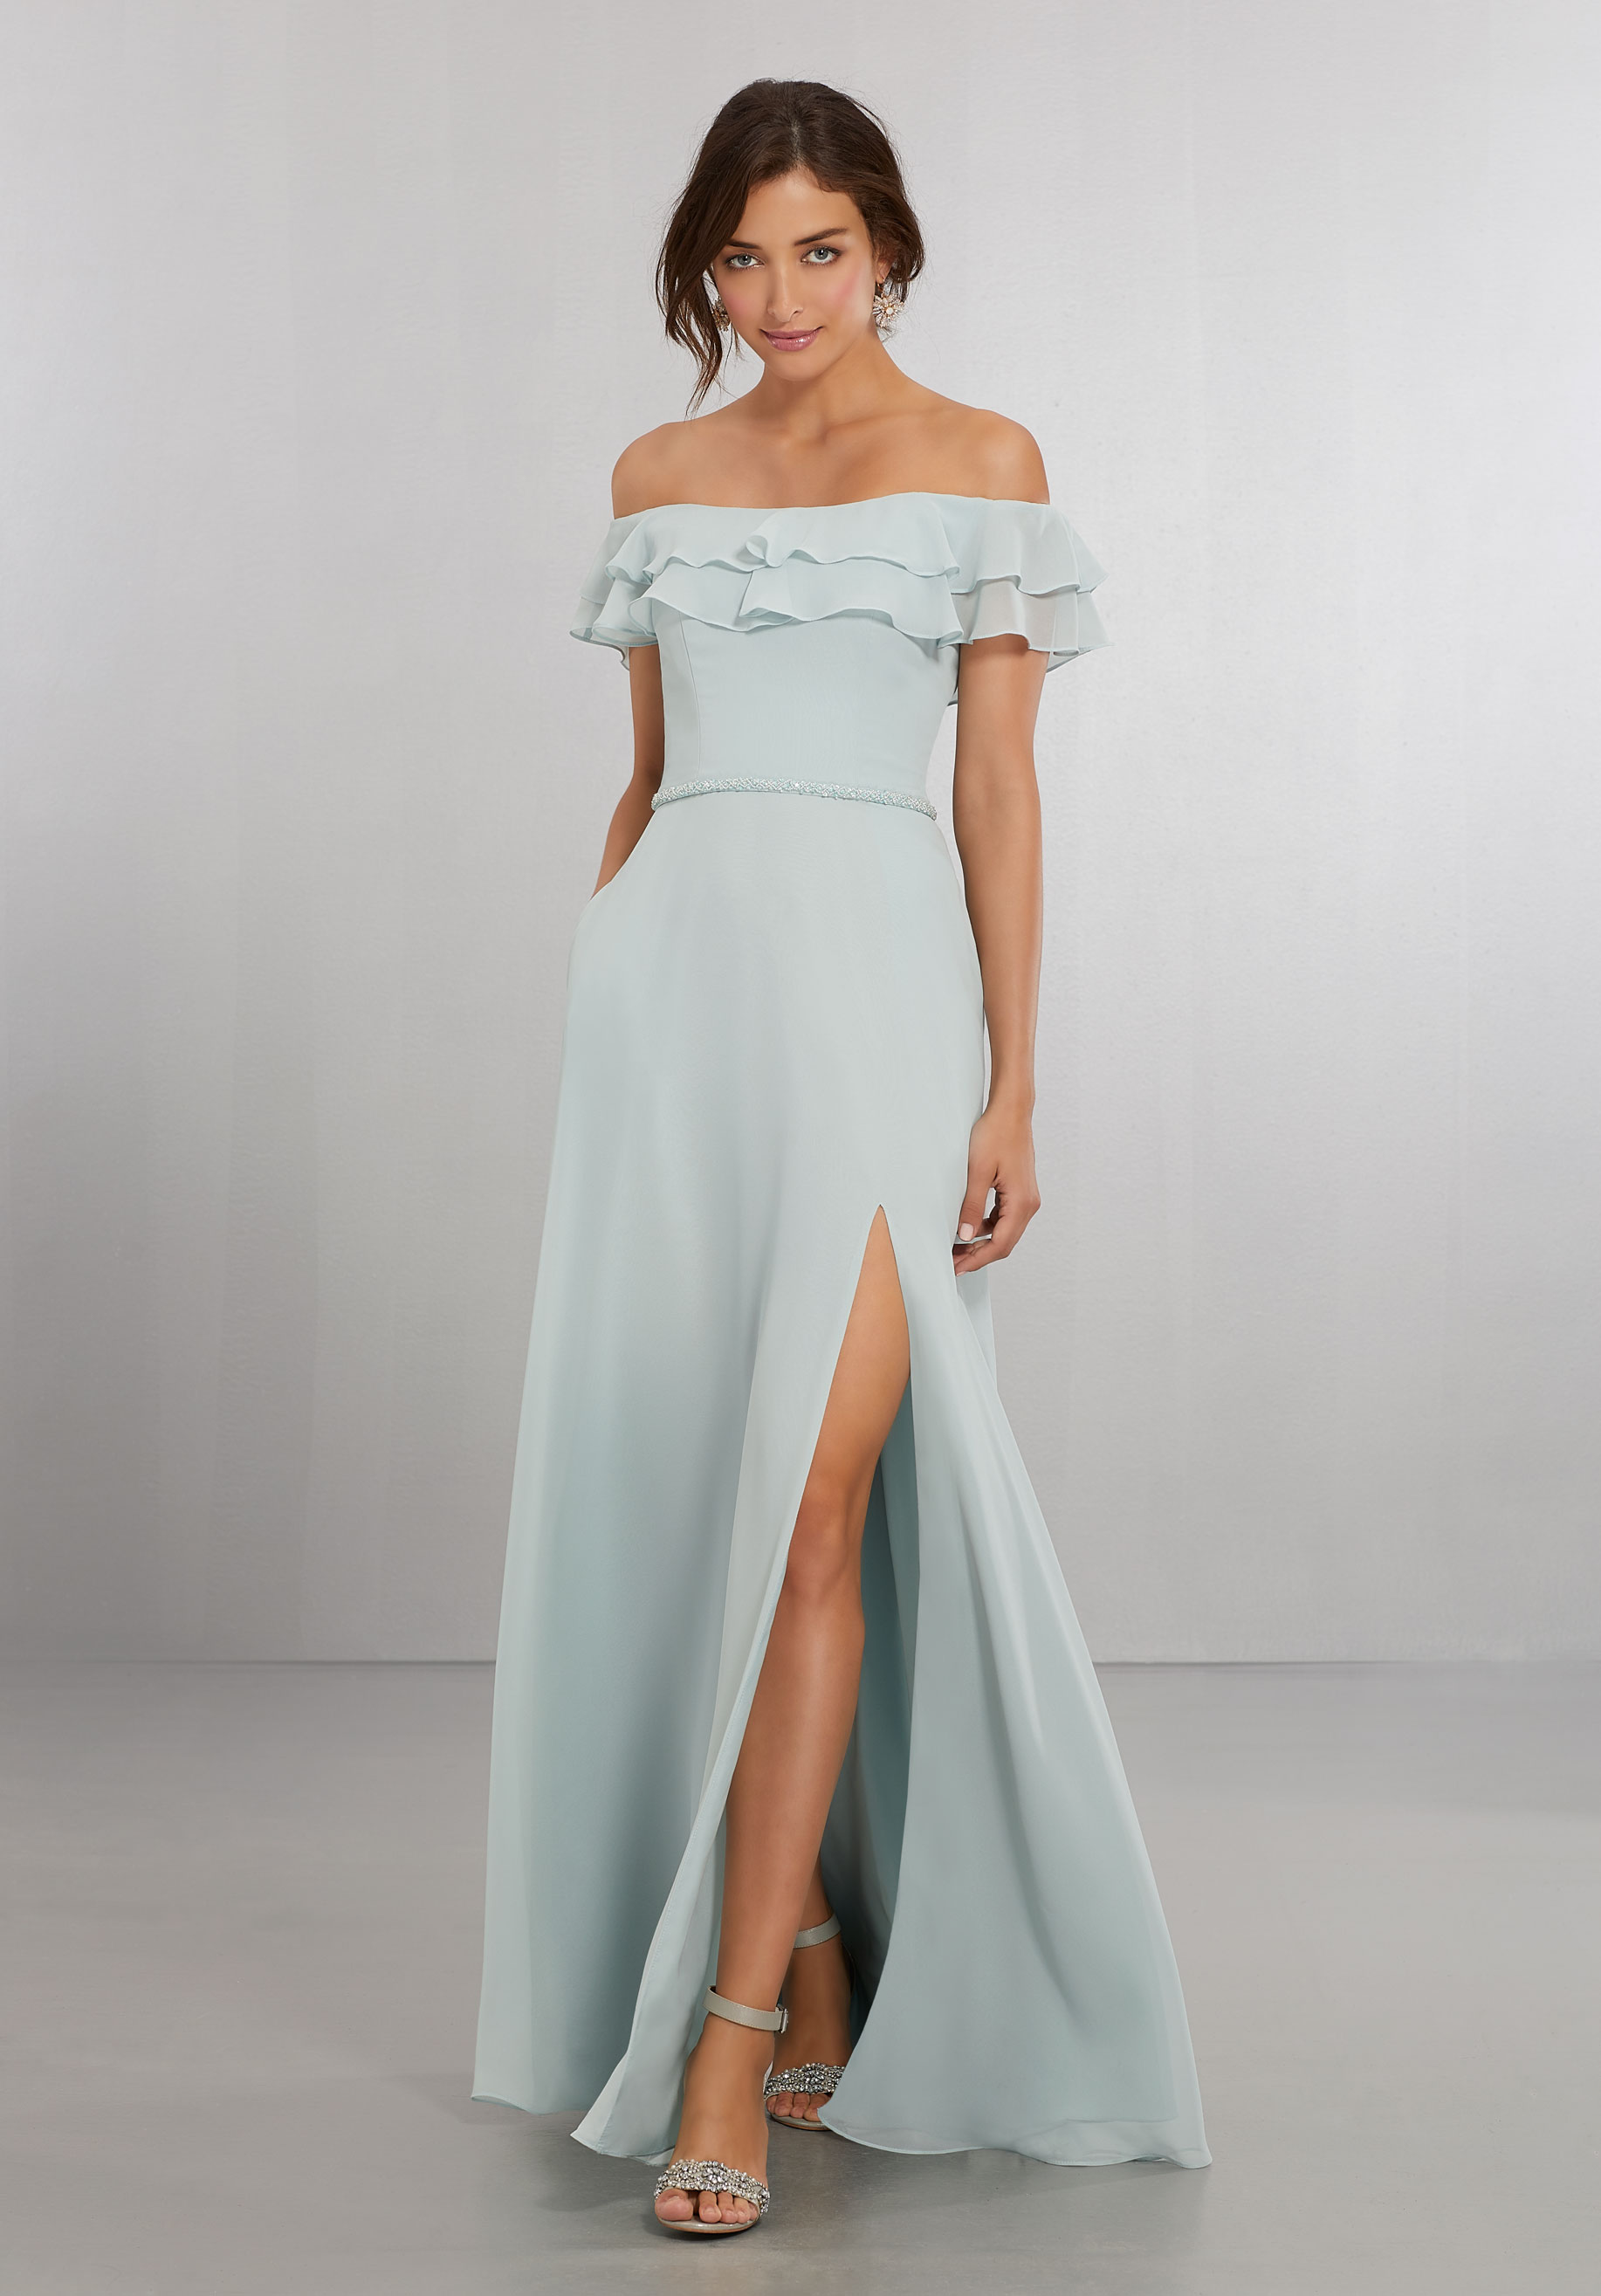 Morilee - Everyone loves a Morilee... and with good reason. A leader in the bridal industry for more than 50 years, MoriLee offers bridesmaids dress that blend style and affordability for ladies who will look and feel amazing on the big day.